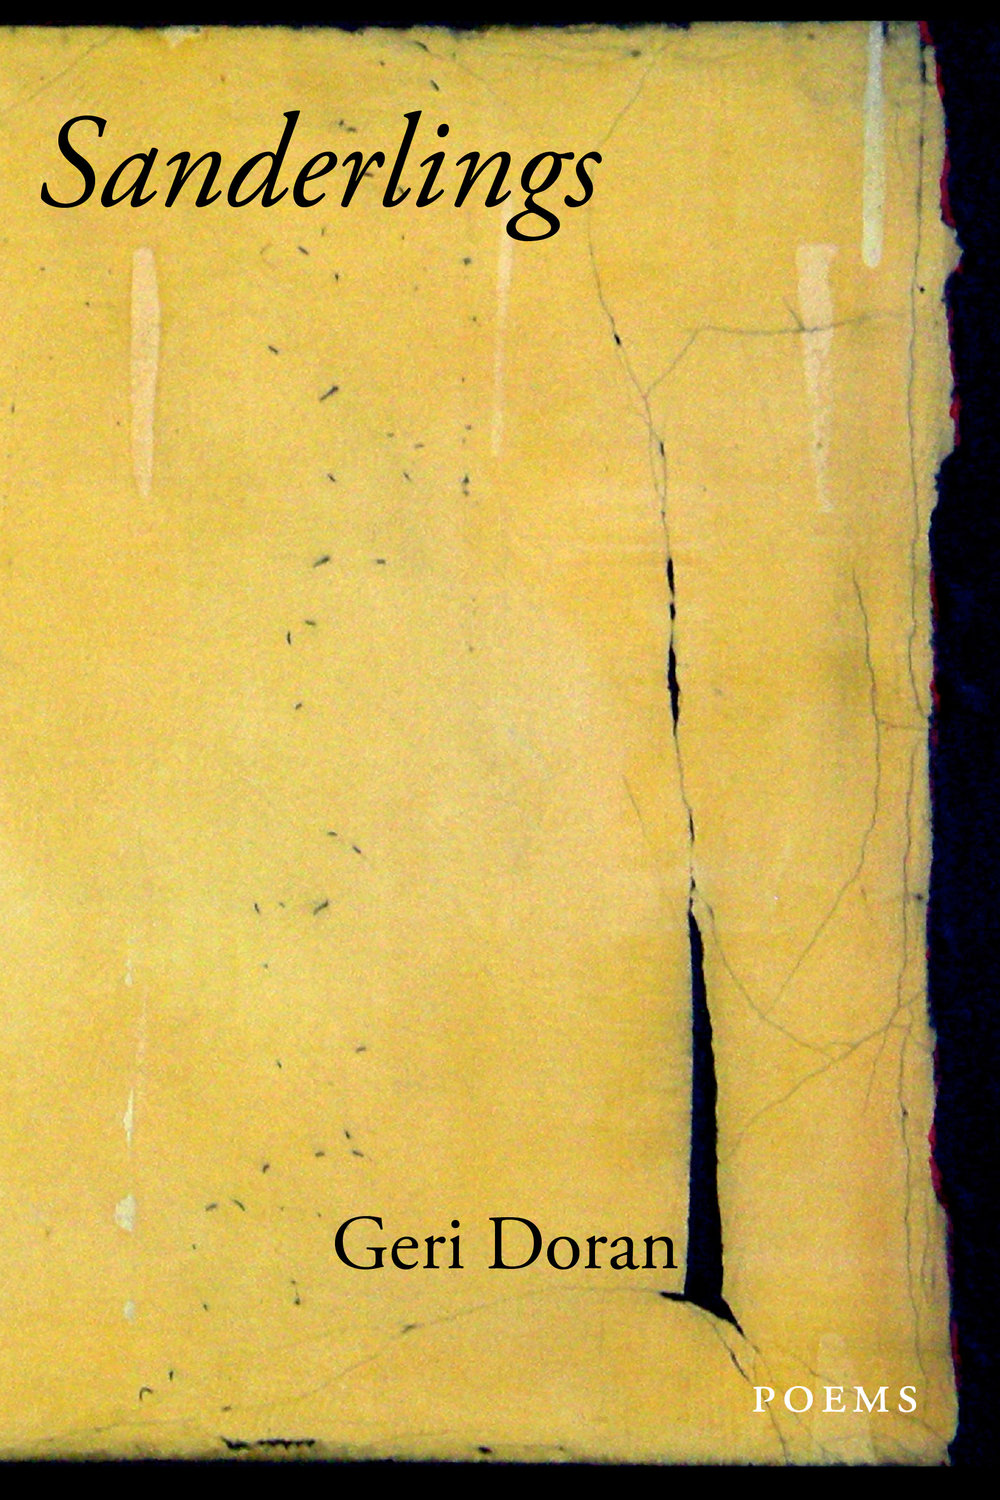 My second collection of poems, Sanderlings (Tupelo Press, 2011).